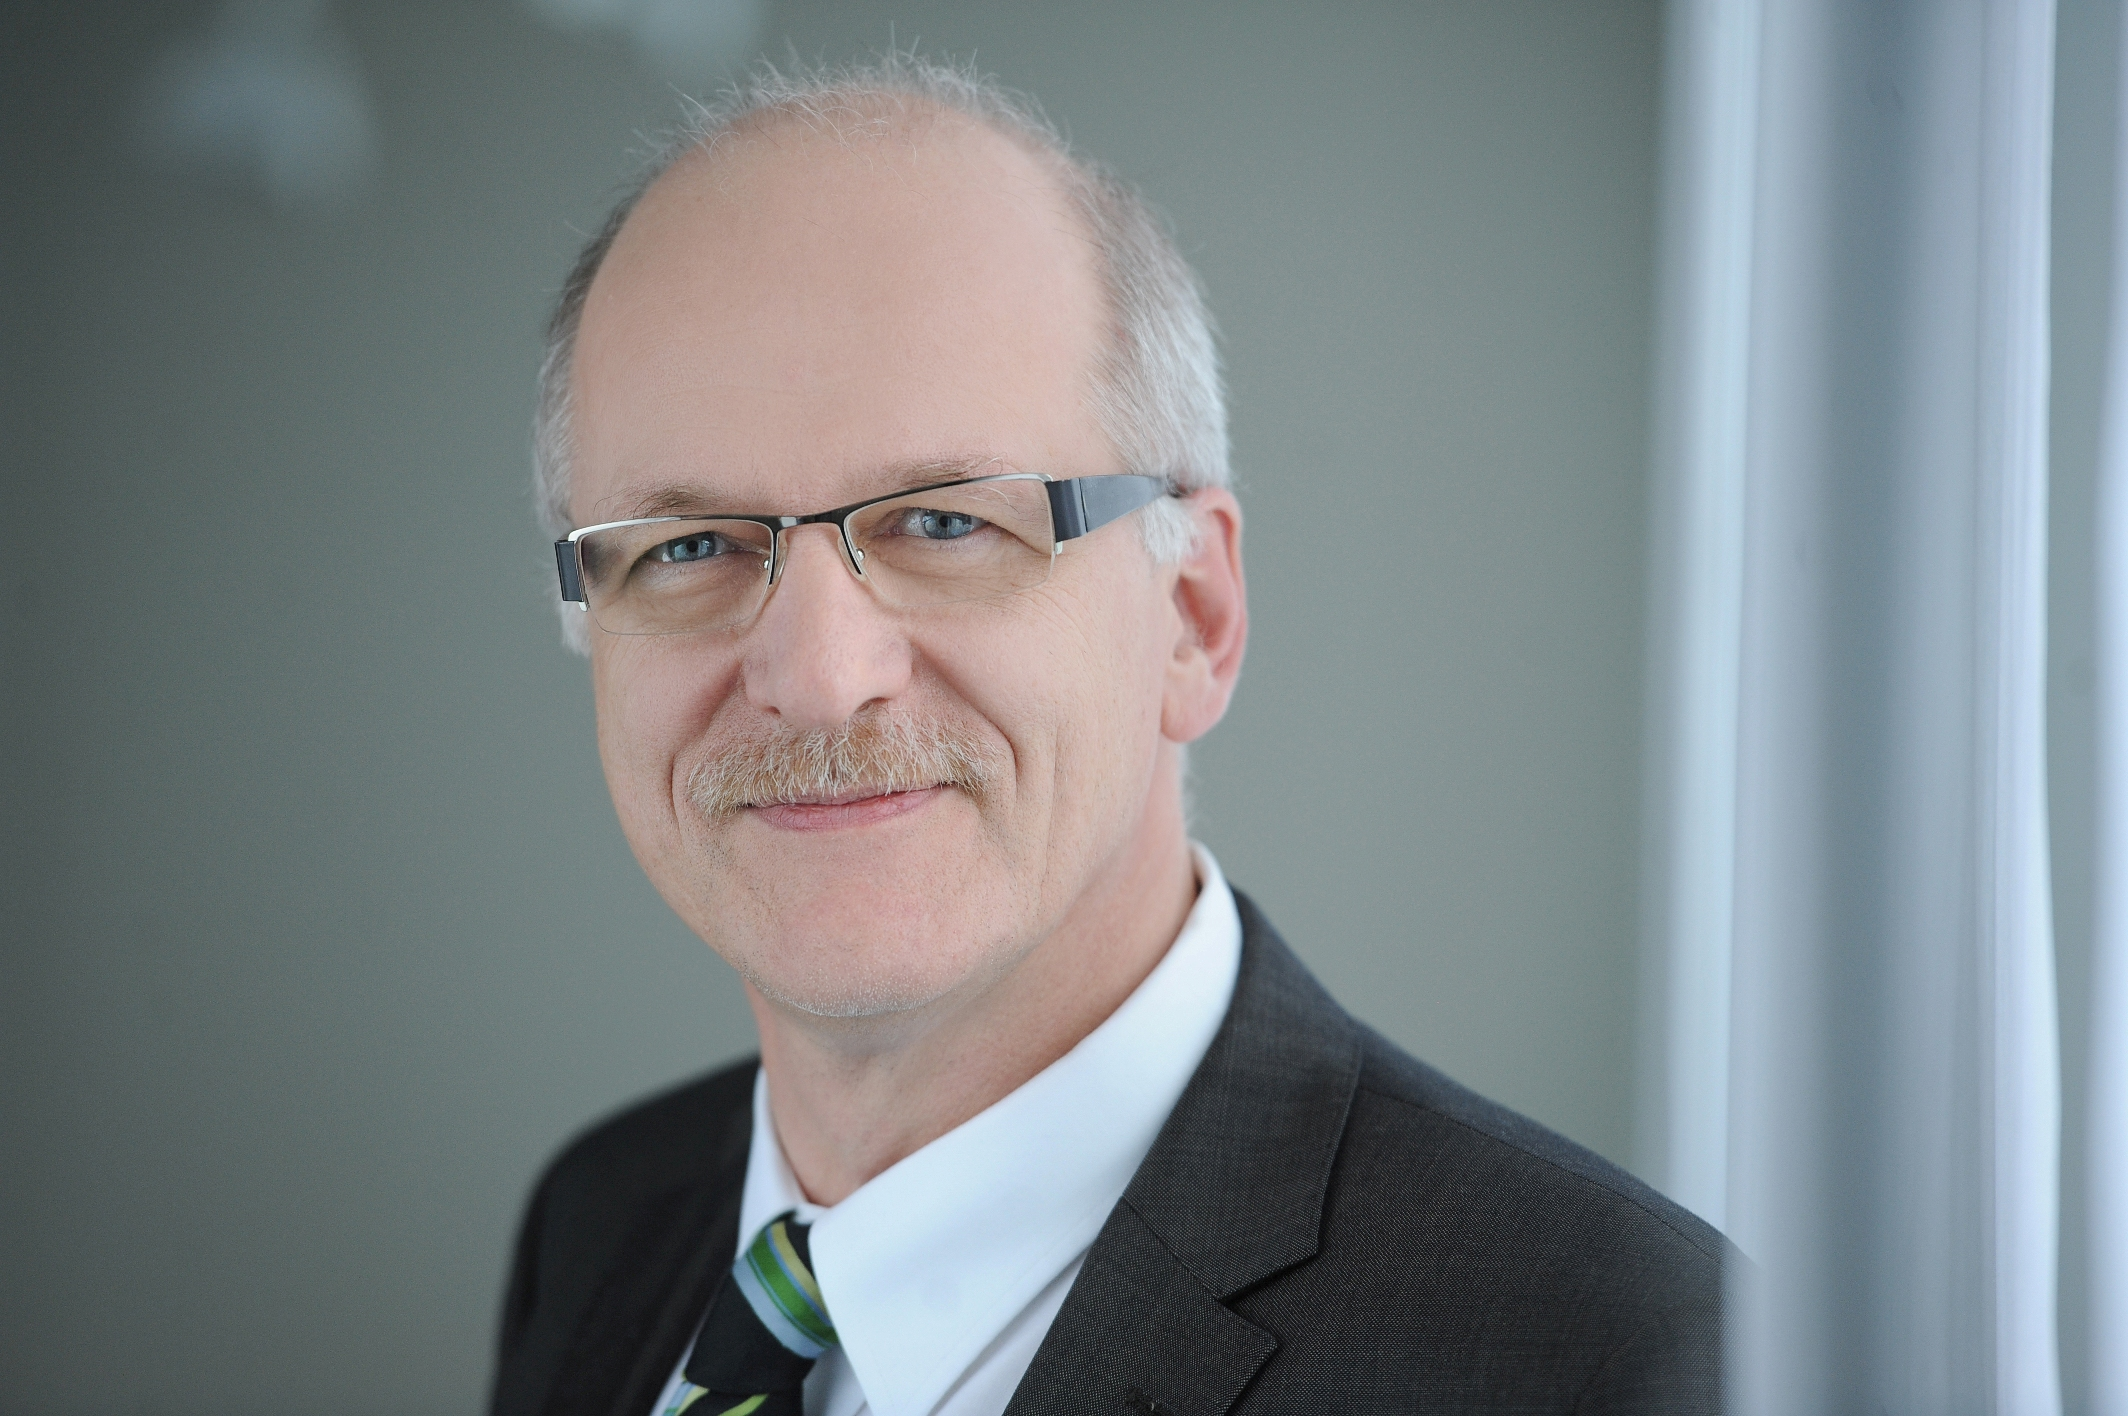 Thomas Hahn is Chief Software Expert at Siemens AG and President of the Big Data Value Association (BDVA)